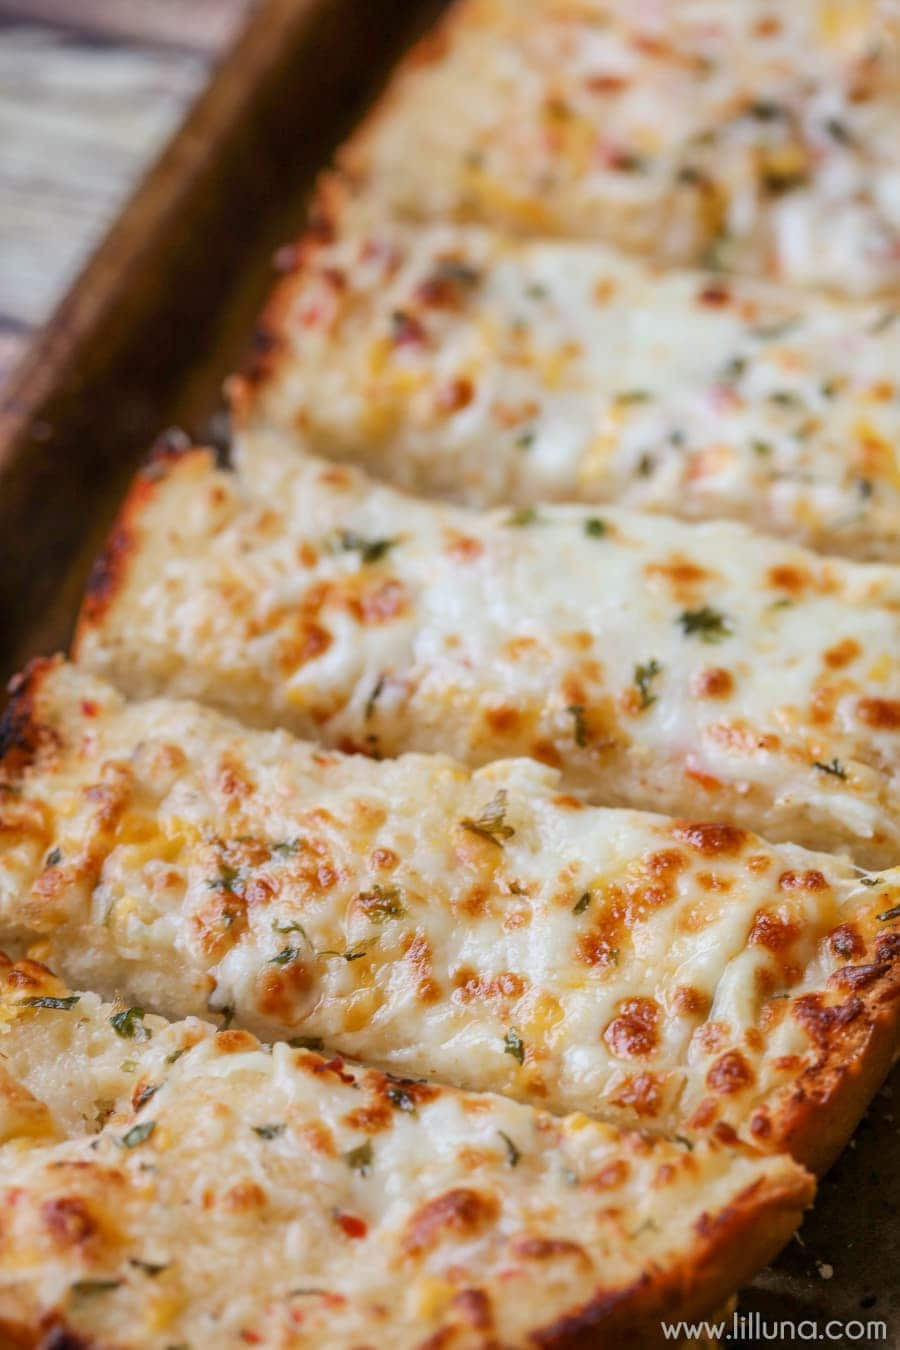 Easy Cheesy Garlic Bread - this is our favorite recipe for Garlic bread. It takes minute to put together and is so cheesy and delicious. It's the perfect side dish to any meal.